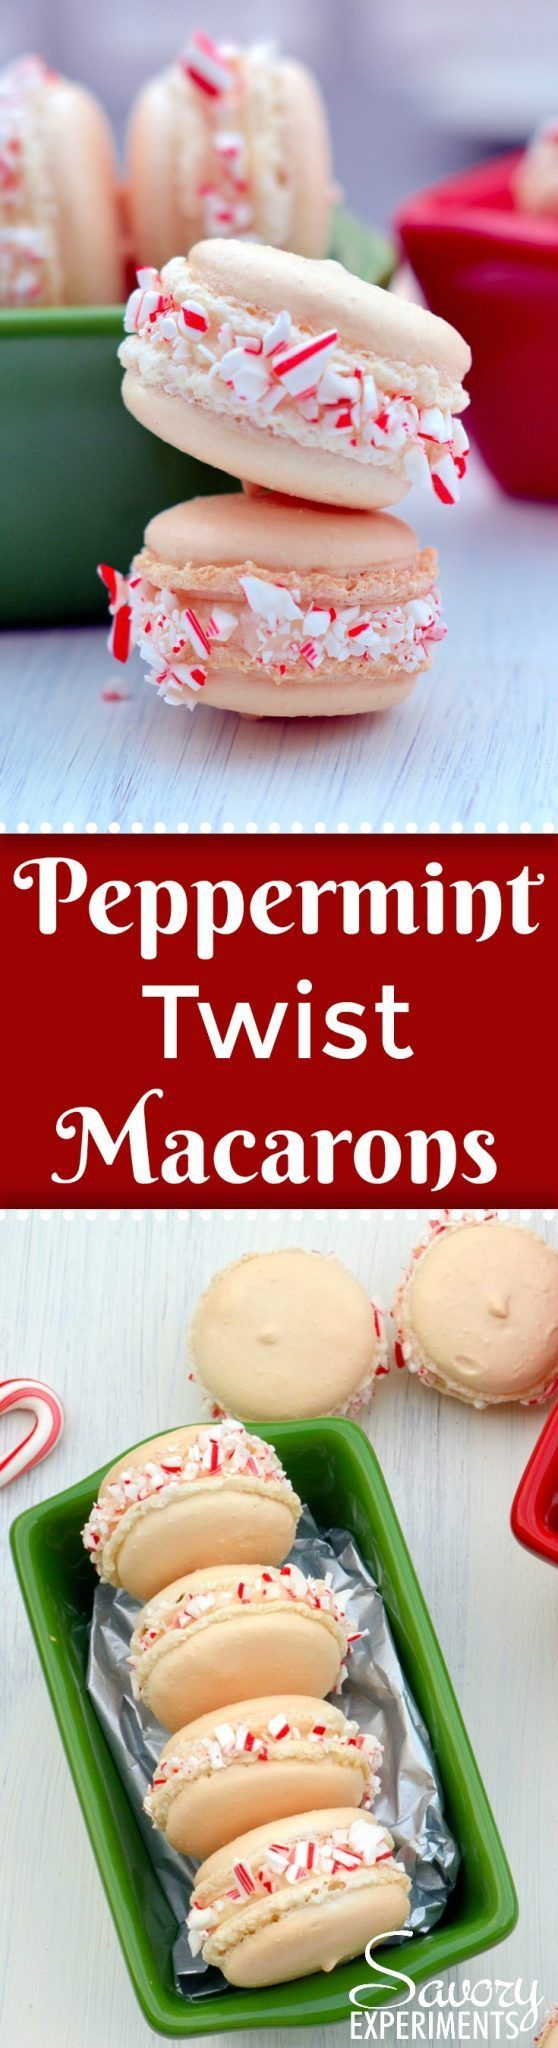 Peppermint Twist Macarons are an easy macaron recipe with a buttercream filling. Perfect recette macarons for Christmas cookies and holiday parties.#easymacaronrecipe #christmascookies www.savoryexperiments.com  via @savorycooking